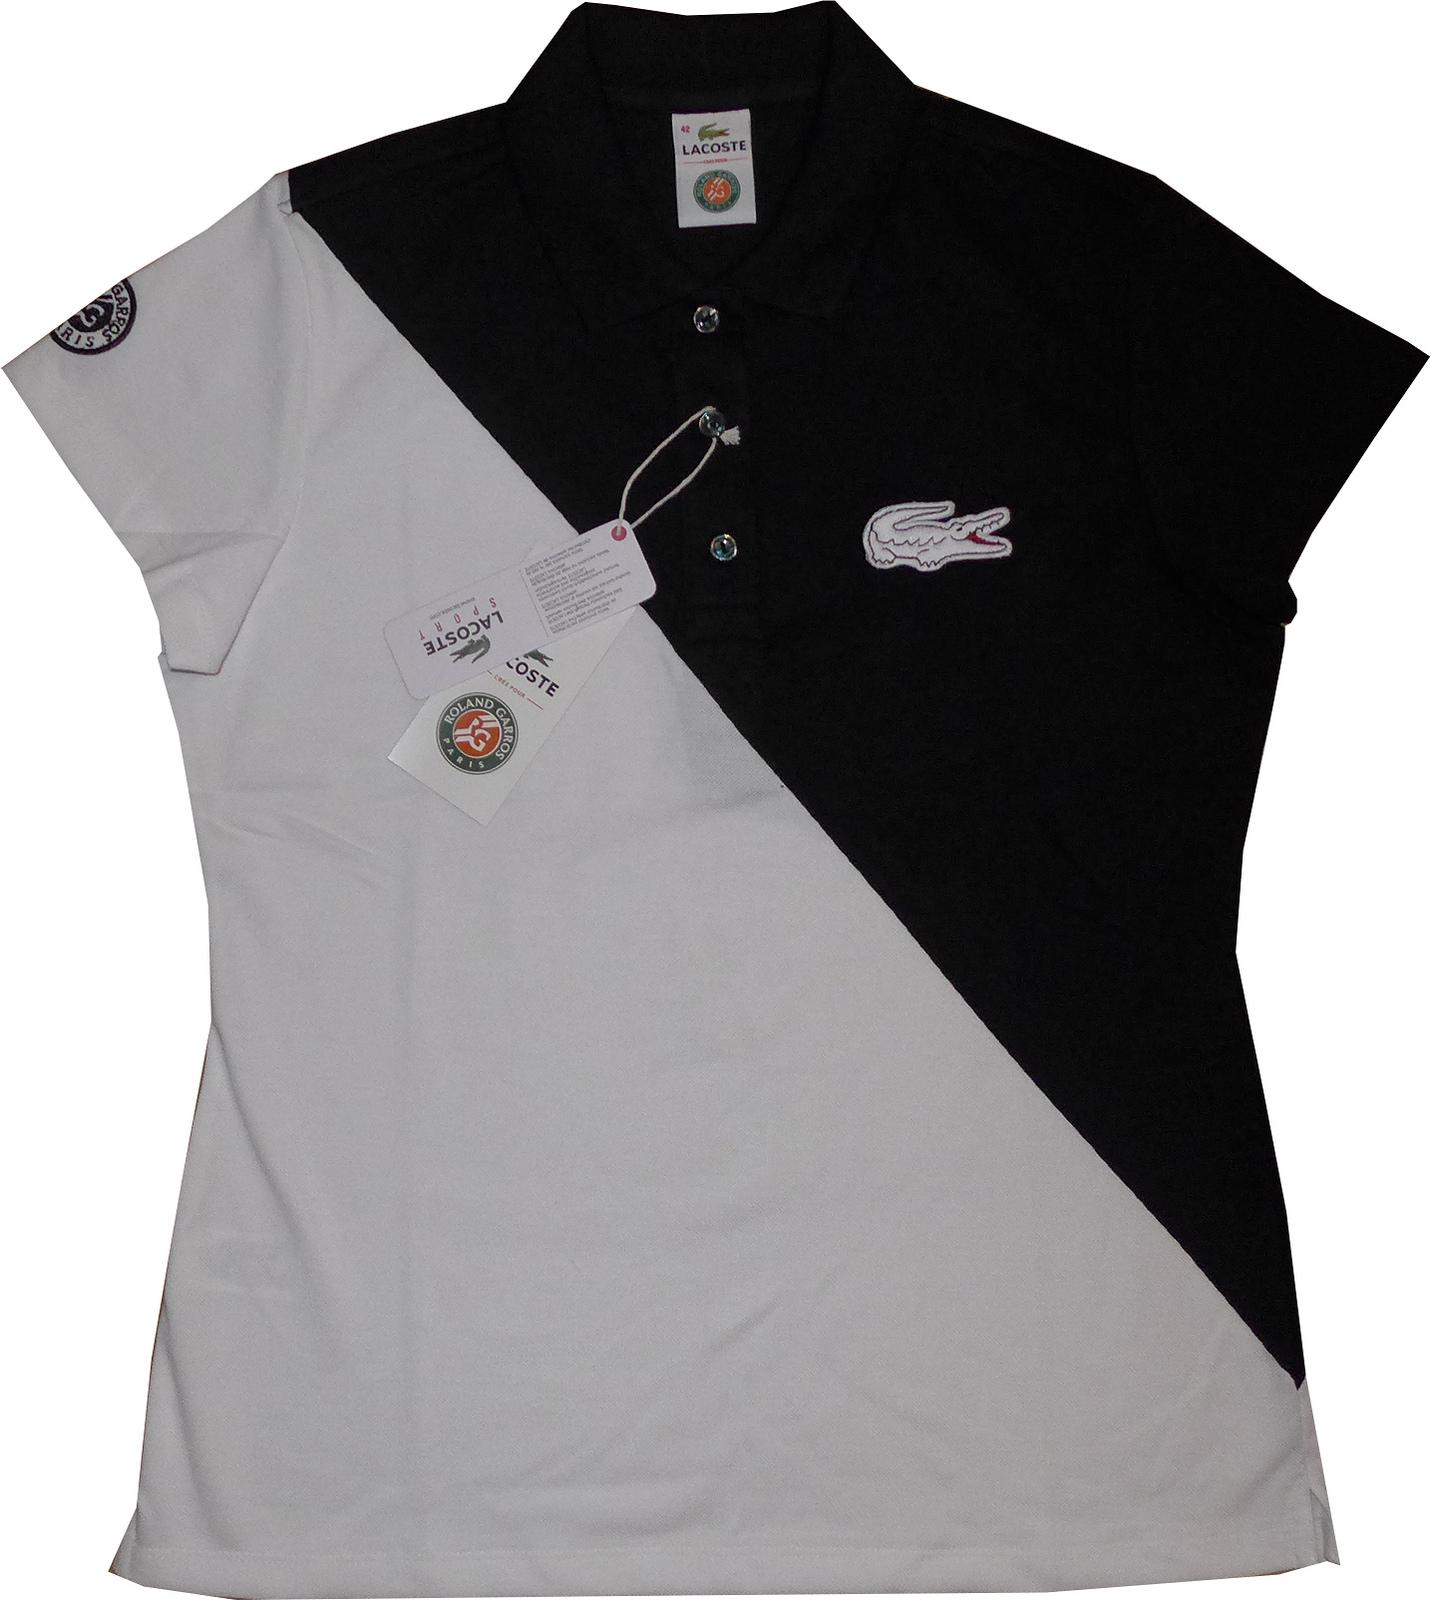 Discount lacoste peanuts snoopy edition polo shirt for men for Discount lacoste mens polo shirts